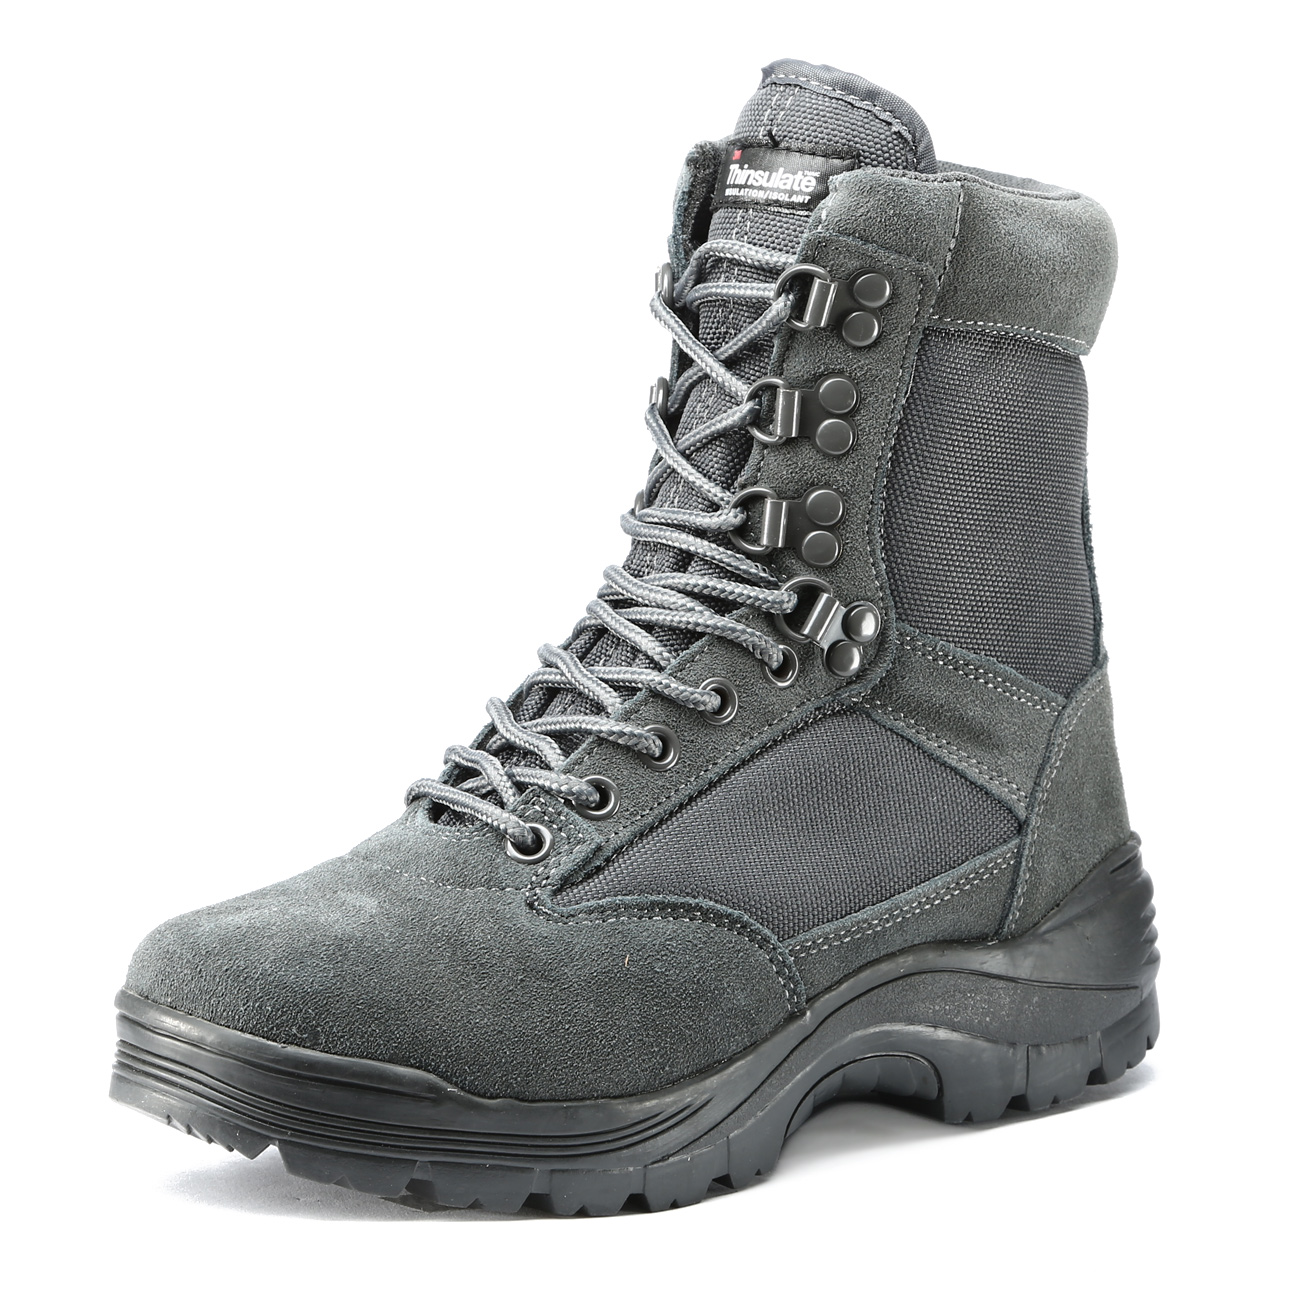 Mil-Tec Stiefel Tactical Boots YKK-Zipper urban grey 6